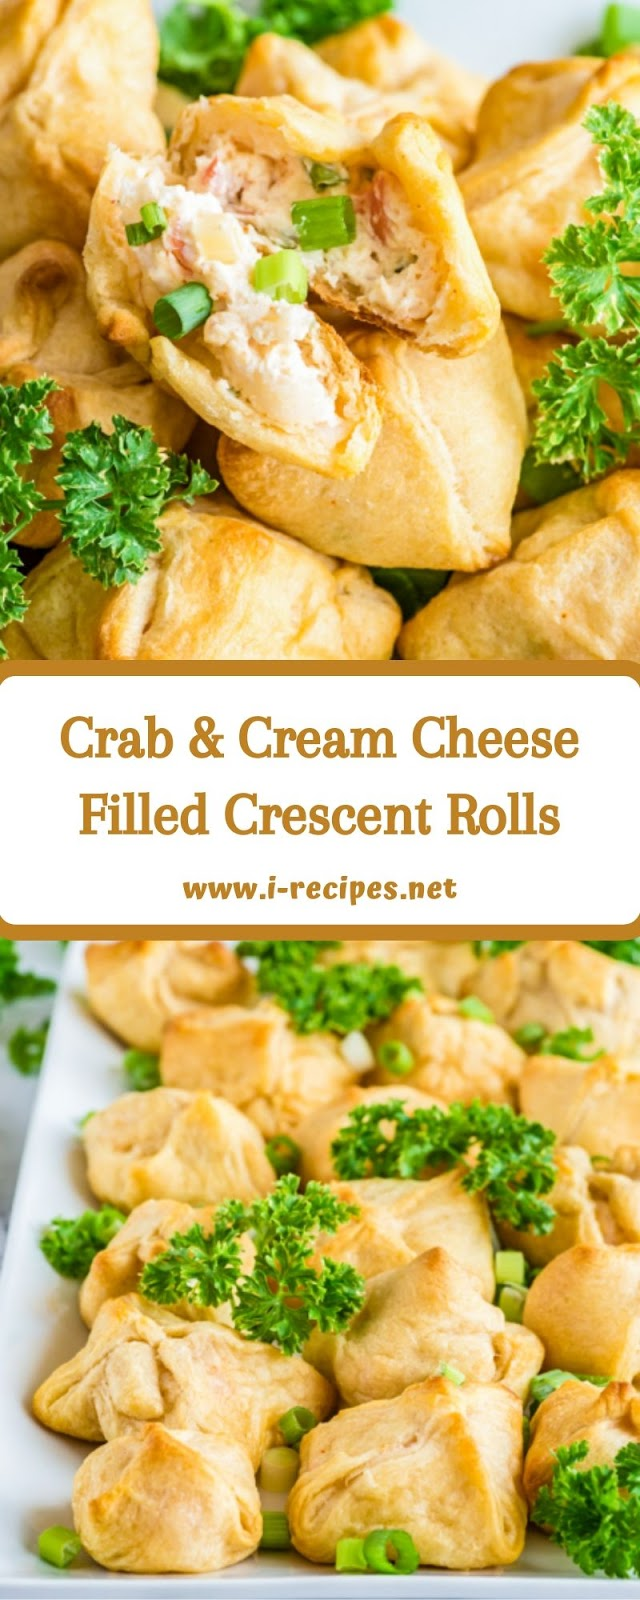 Crab & Cream Cheese Filled Crescent Rolls